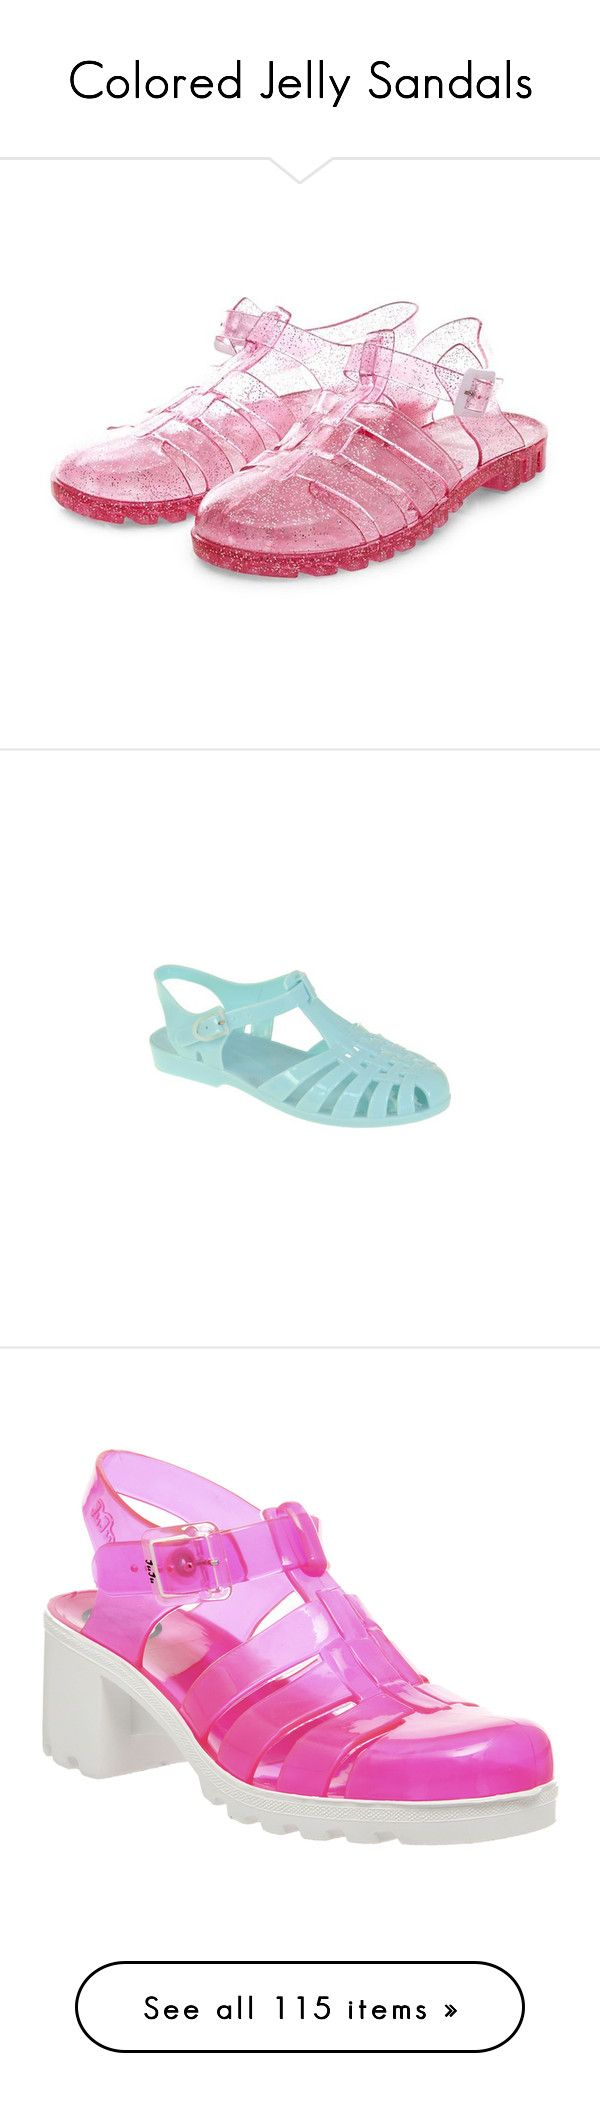 """Colored Jelly Sandals"" by hinatapinata ❤ liked on Polyvore featuring shoes, jelly shoes, caged shoes, pink shoes, pink glitter shoes, glitter jelly shoes, light blue, water sport shoes, women and light blue shoes"